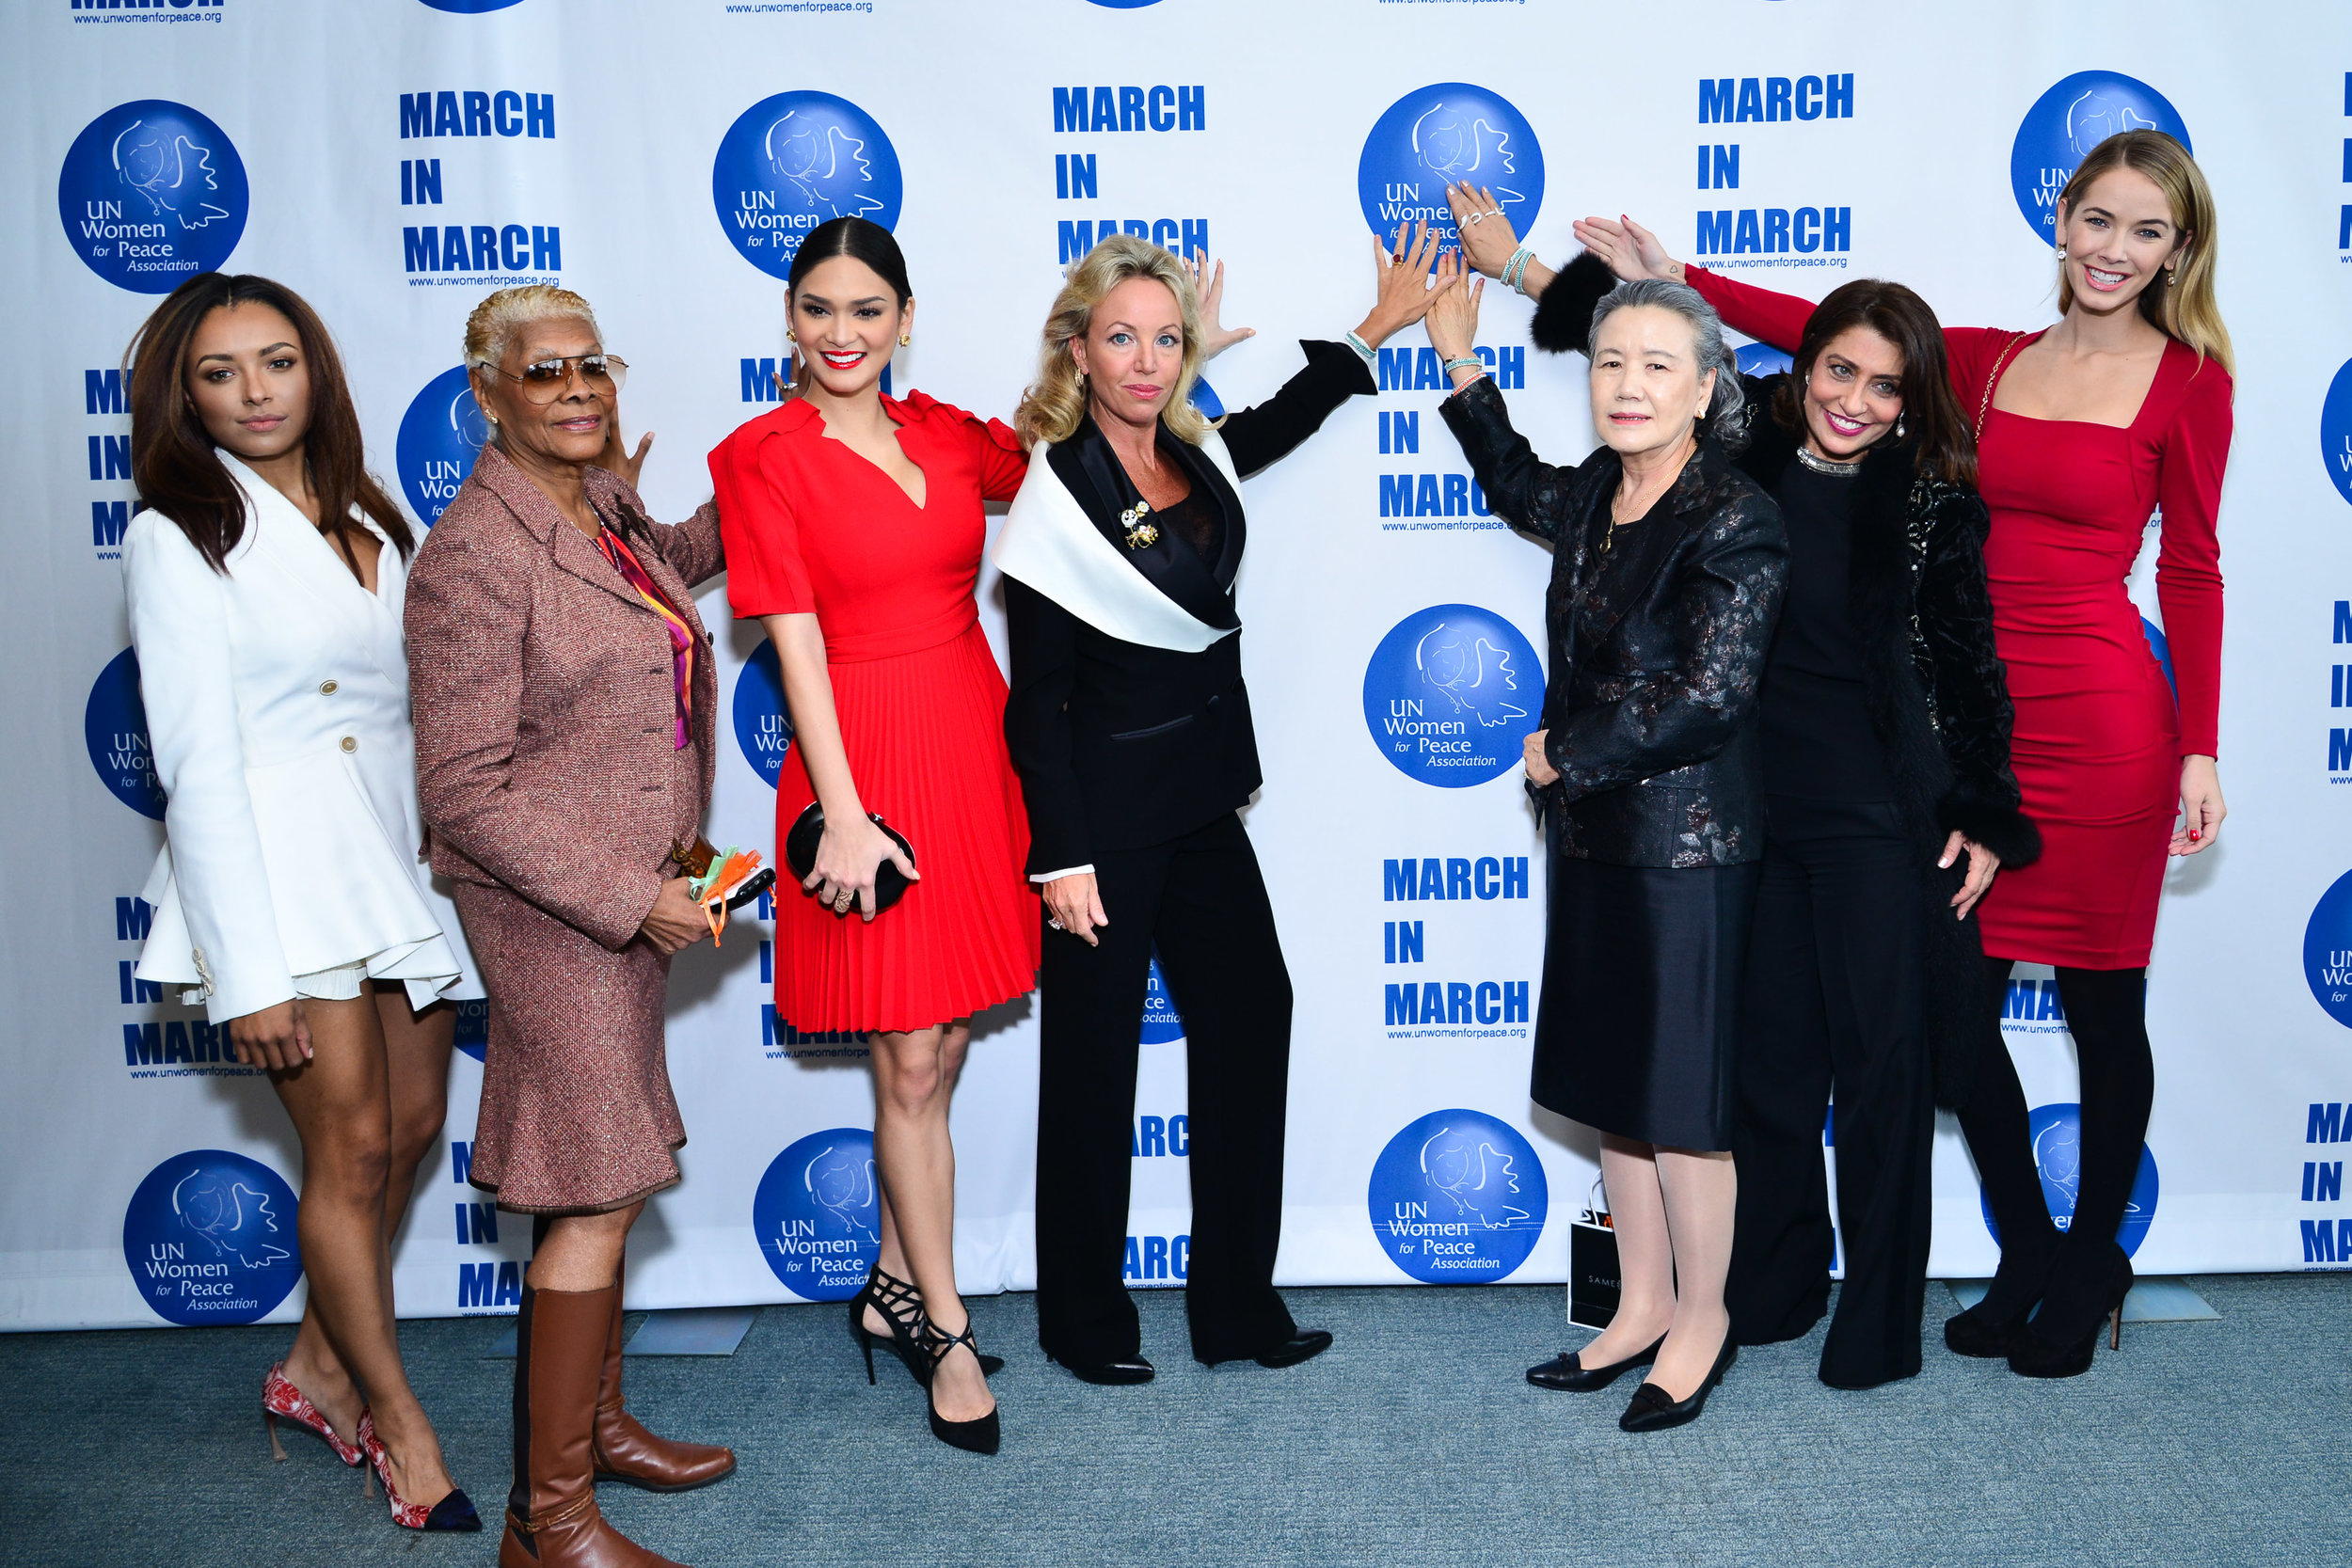 Kat Graham, Dionne Warwick, Pia Wurtzbach, Princess Camilla Duchess of Castro, Mrs. Ban Soon-Taek, Dame Muna Rihani Al-Nasser & Olivia Jordan at the UN Women For Peace Association Annual Awards Luncheon on March 4, 2016